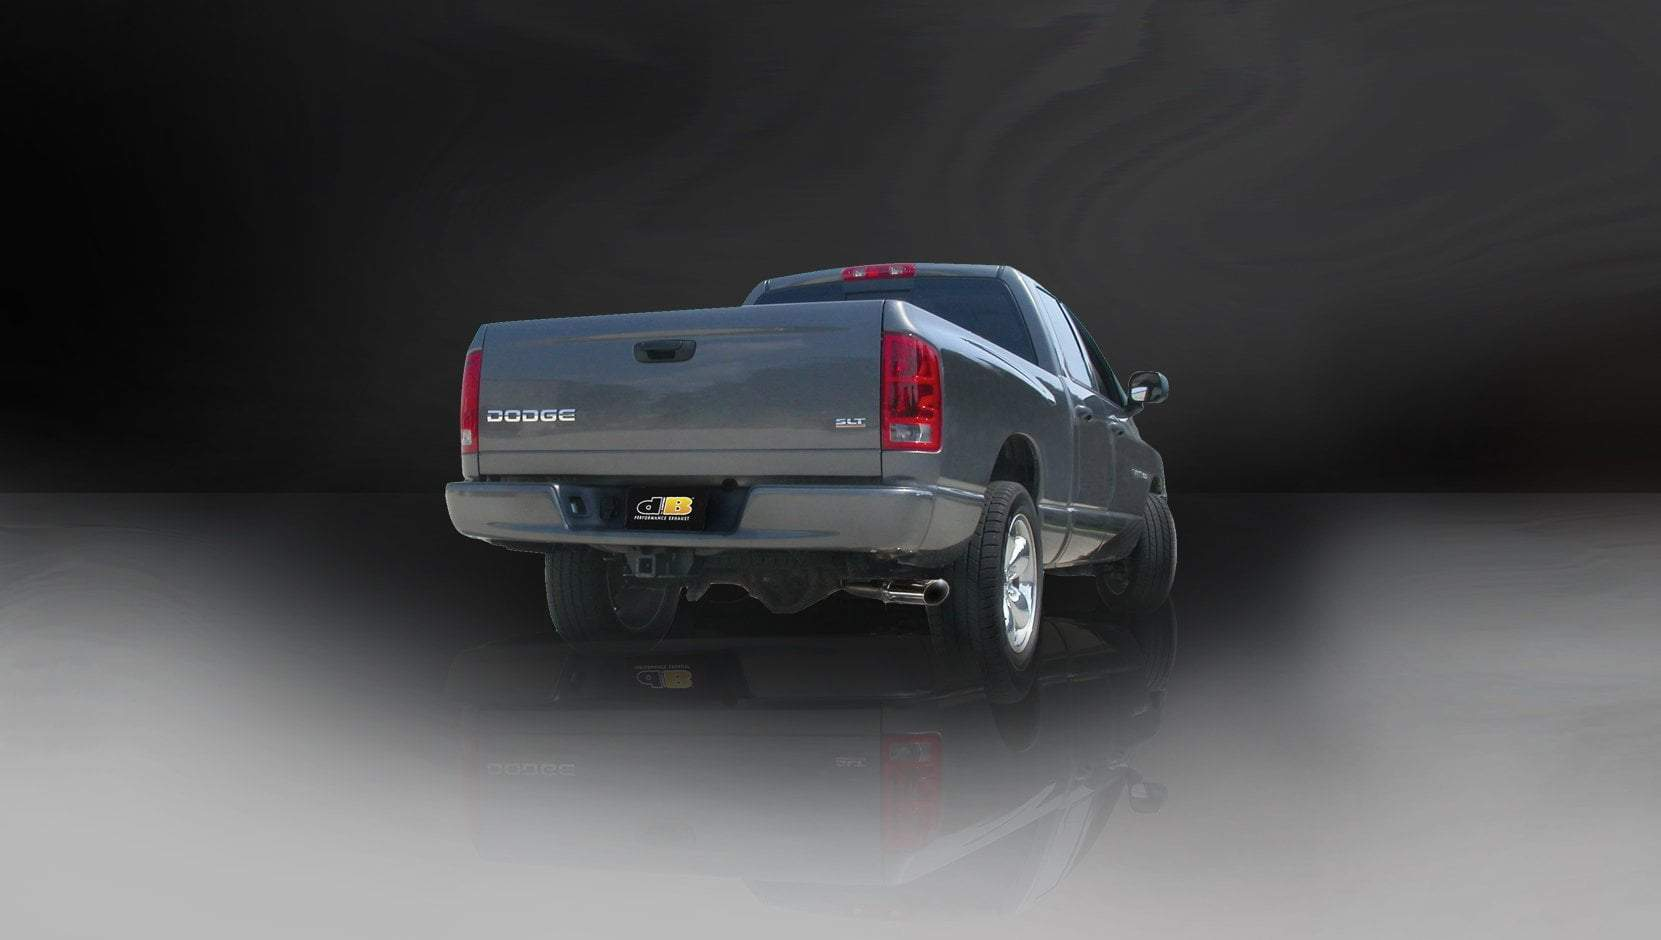 "dB Cat-Back Exhaust Polished / Sport / Single Side - Single 4in Slash Cut 2004-2005 Dodge RAM 1500 5.7L V8, 3.0"" Single Side Exit Catback Exhaust System with 4.0"" Tip (24402) Sport Sound Level"